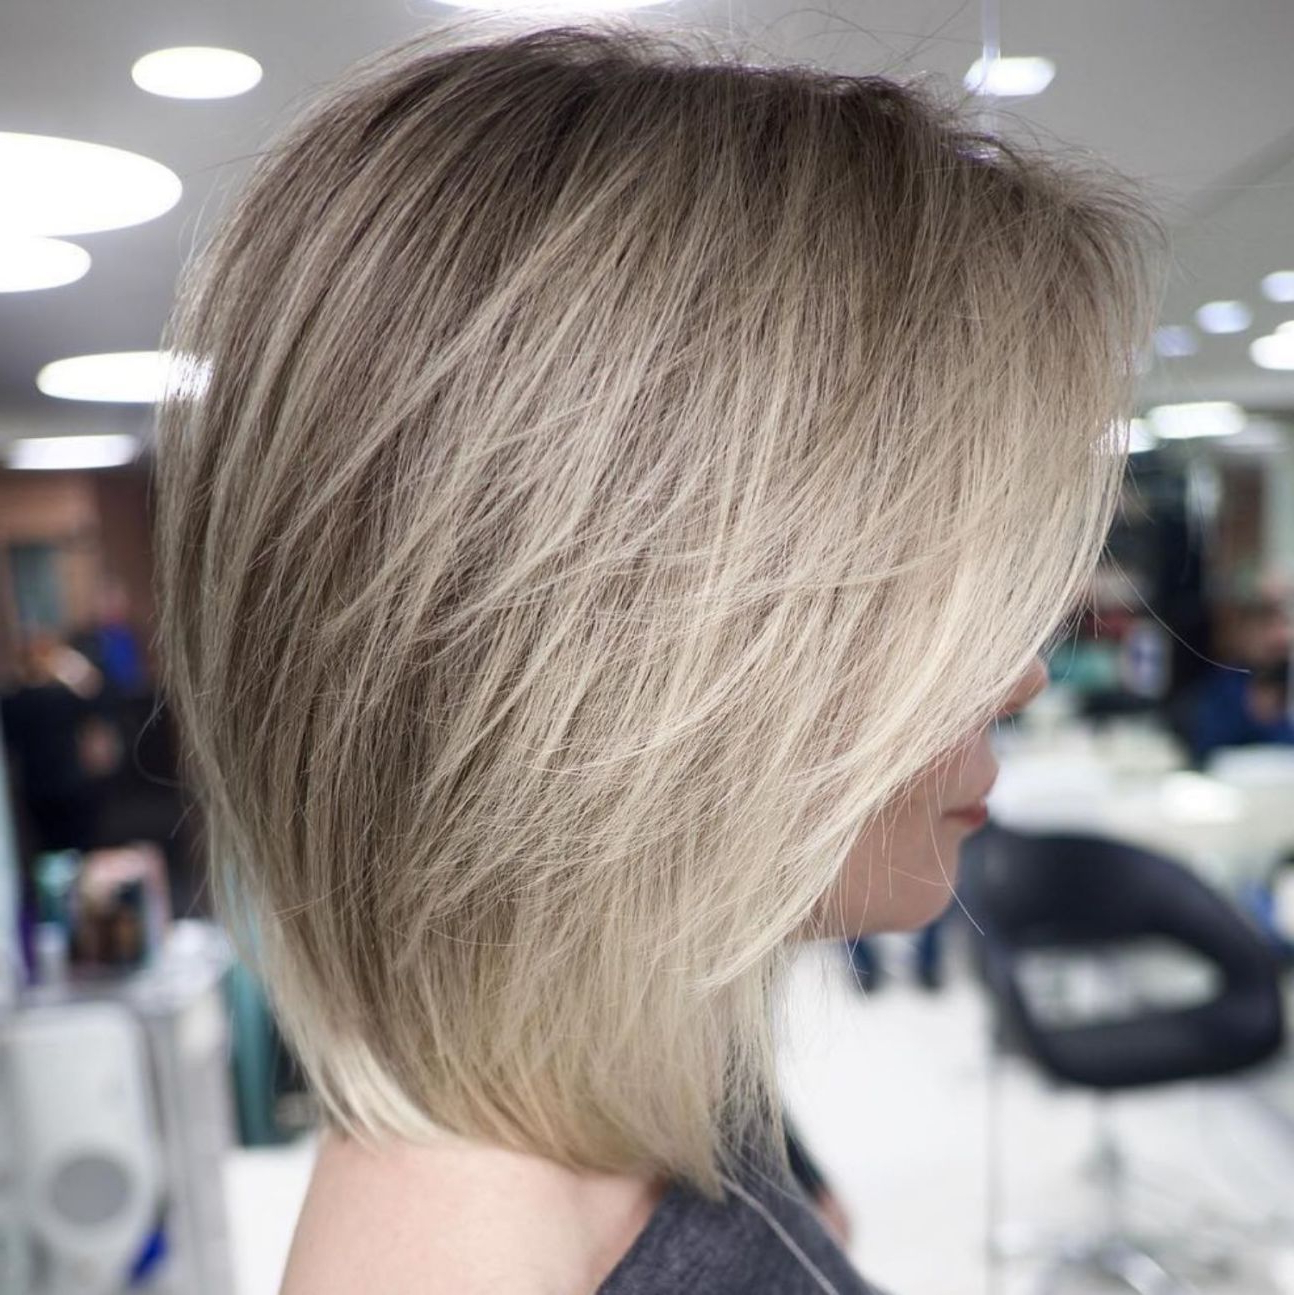 Popular Short Layered Bob Hairstyles With Feathered Bangs Regarding Feathered Bob With Side Bangs (View 5 of 20)